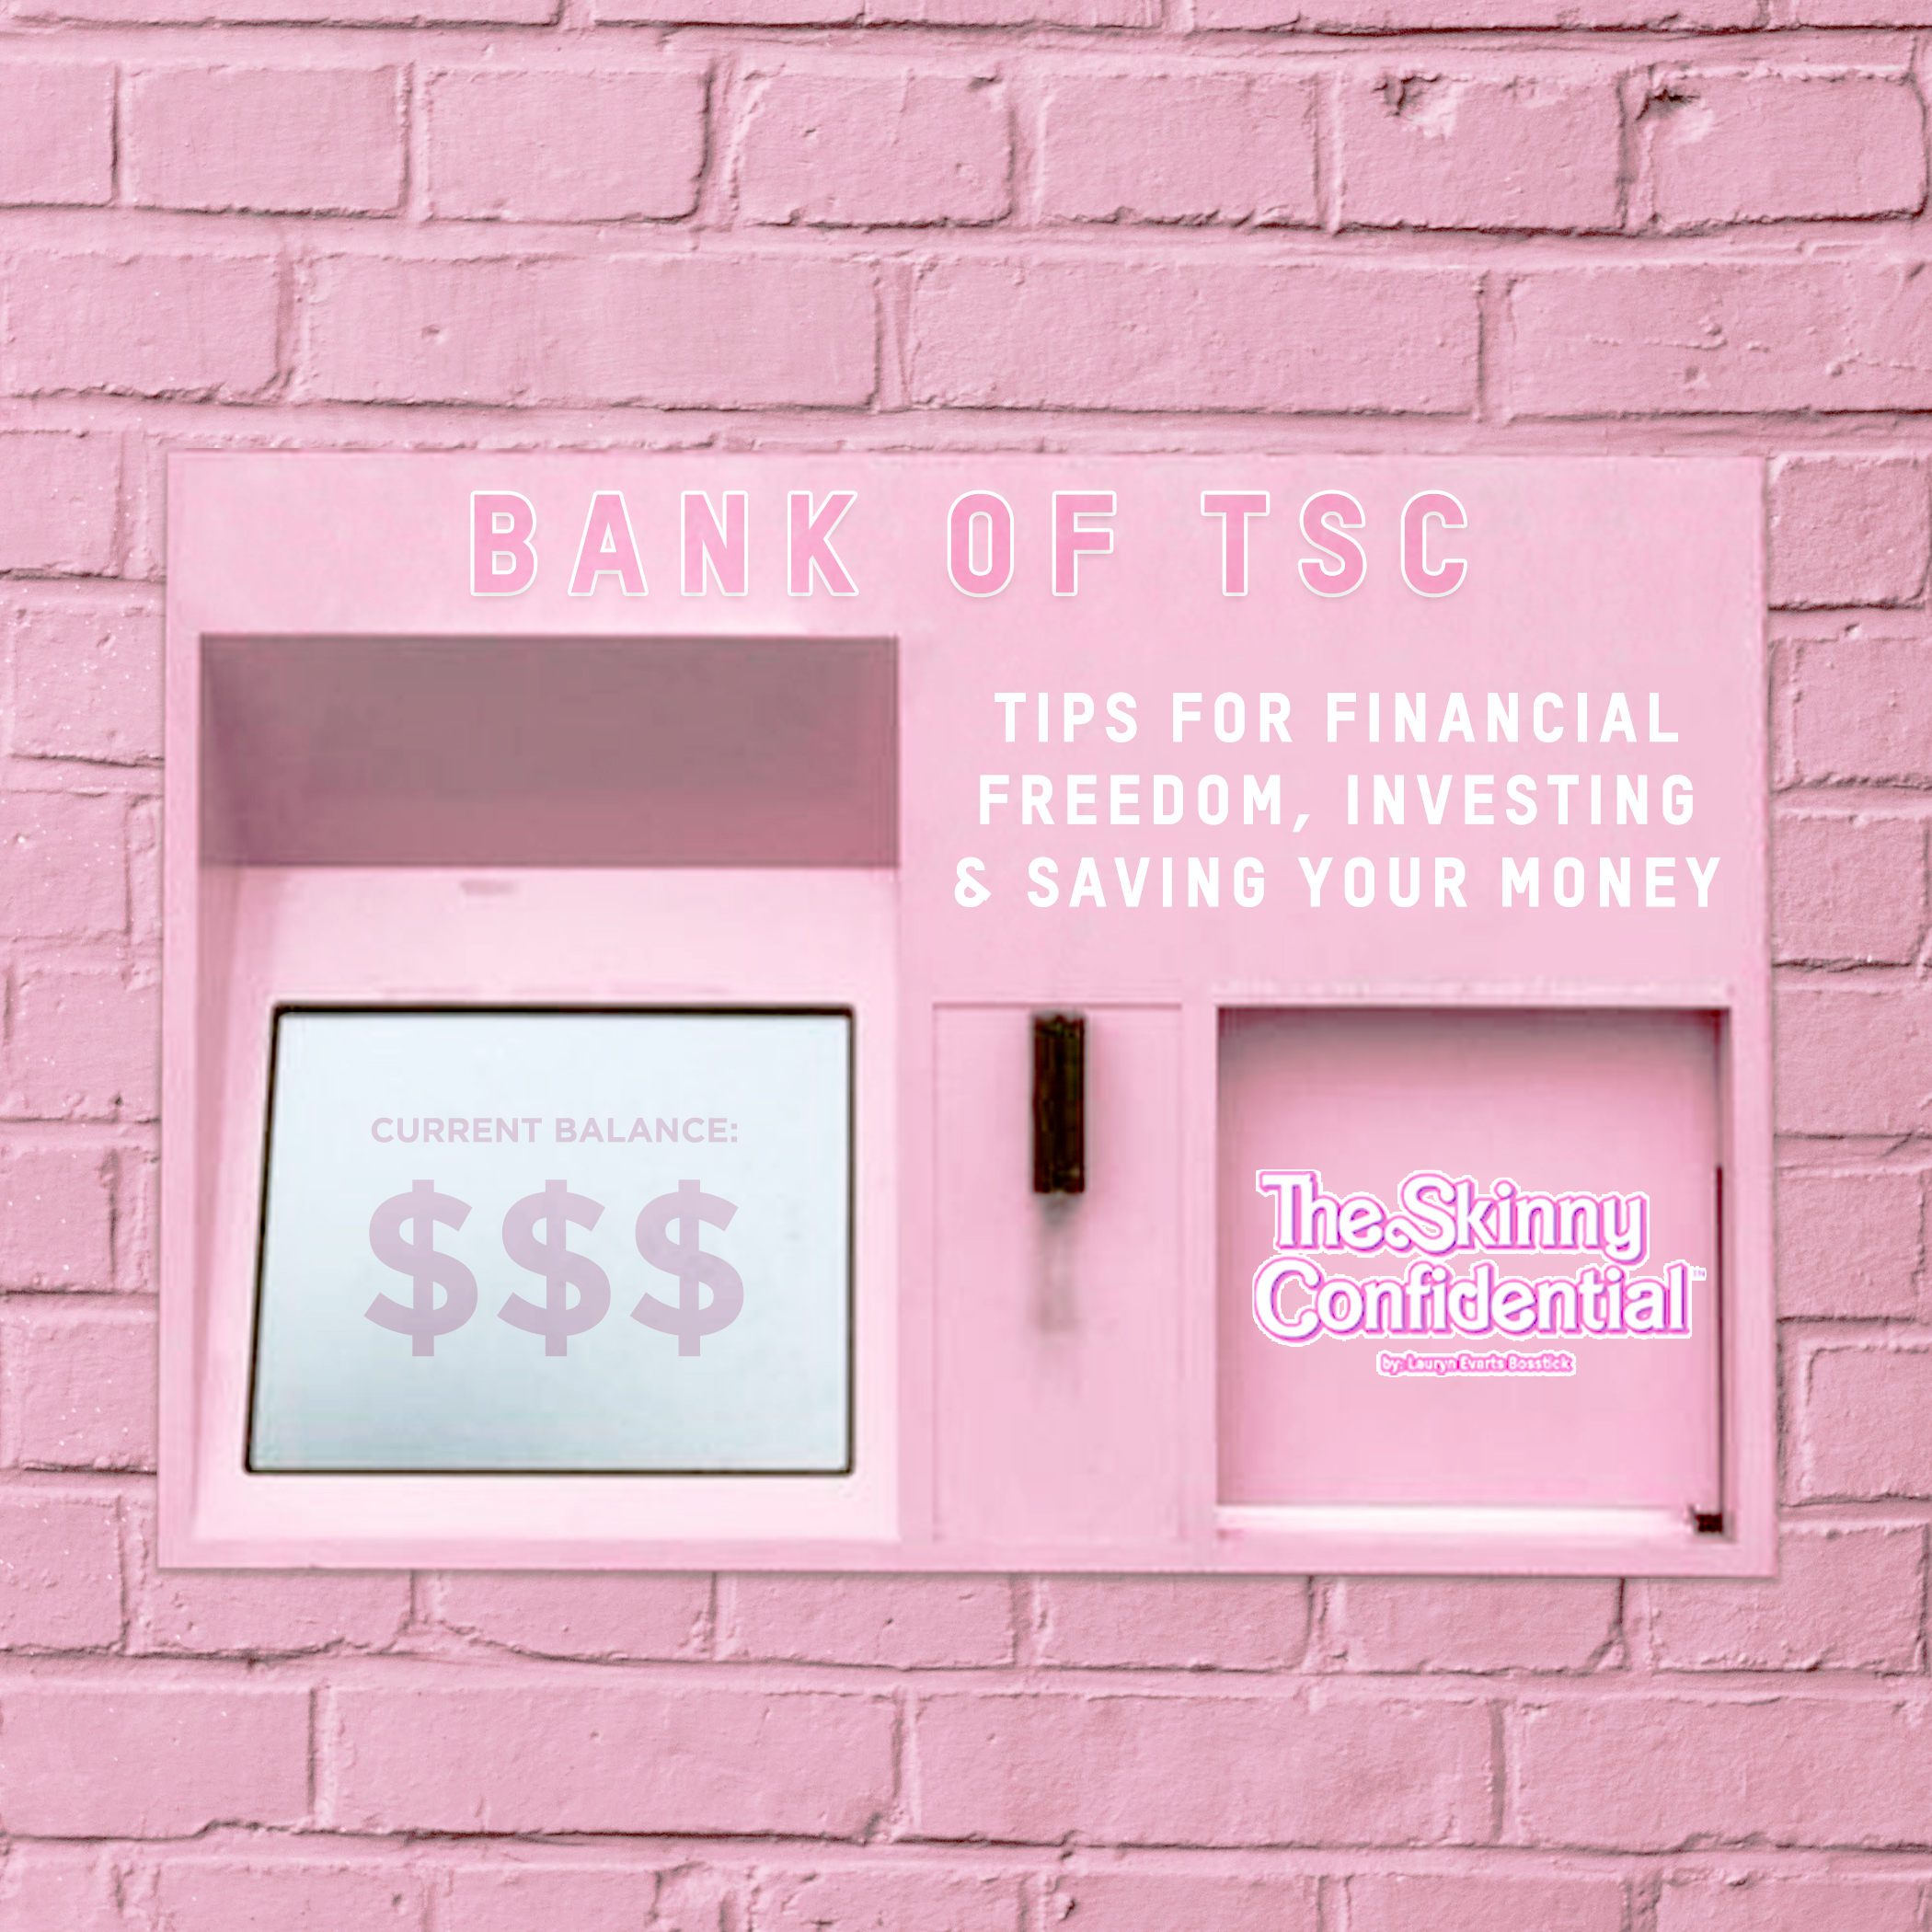 Tips for Financial Freedom, Investing & Saving Your Money